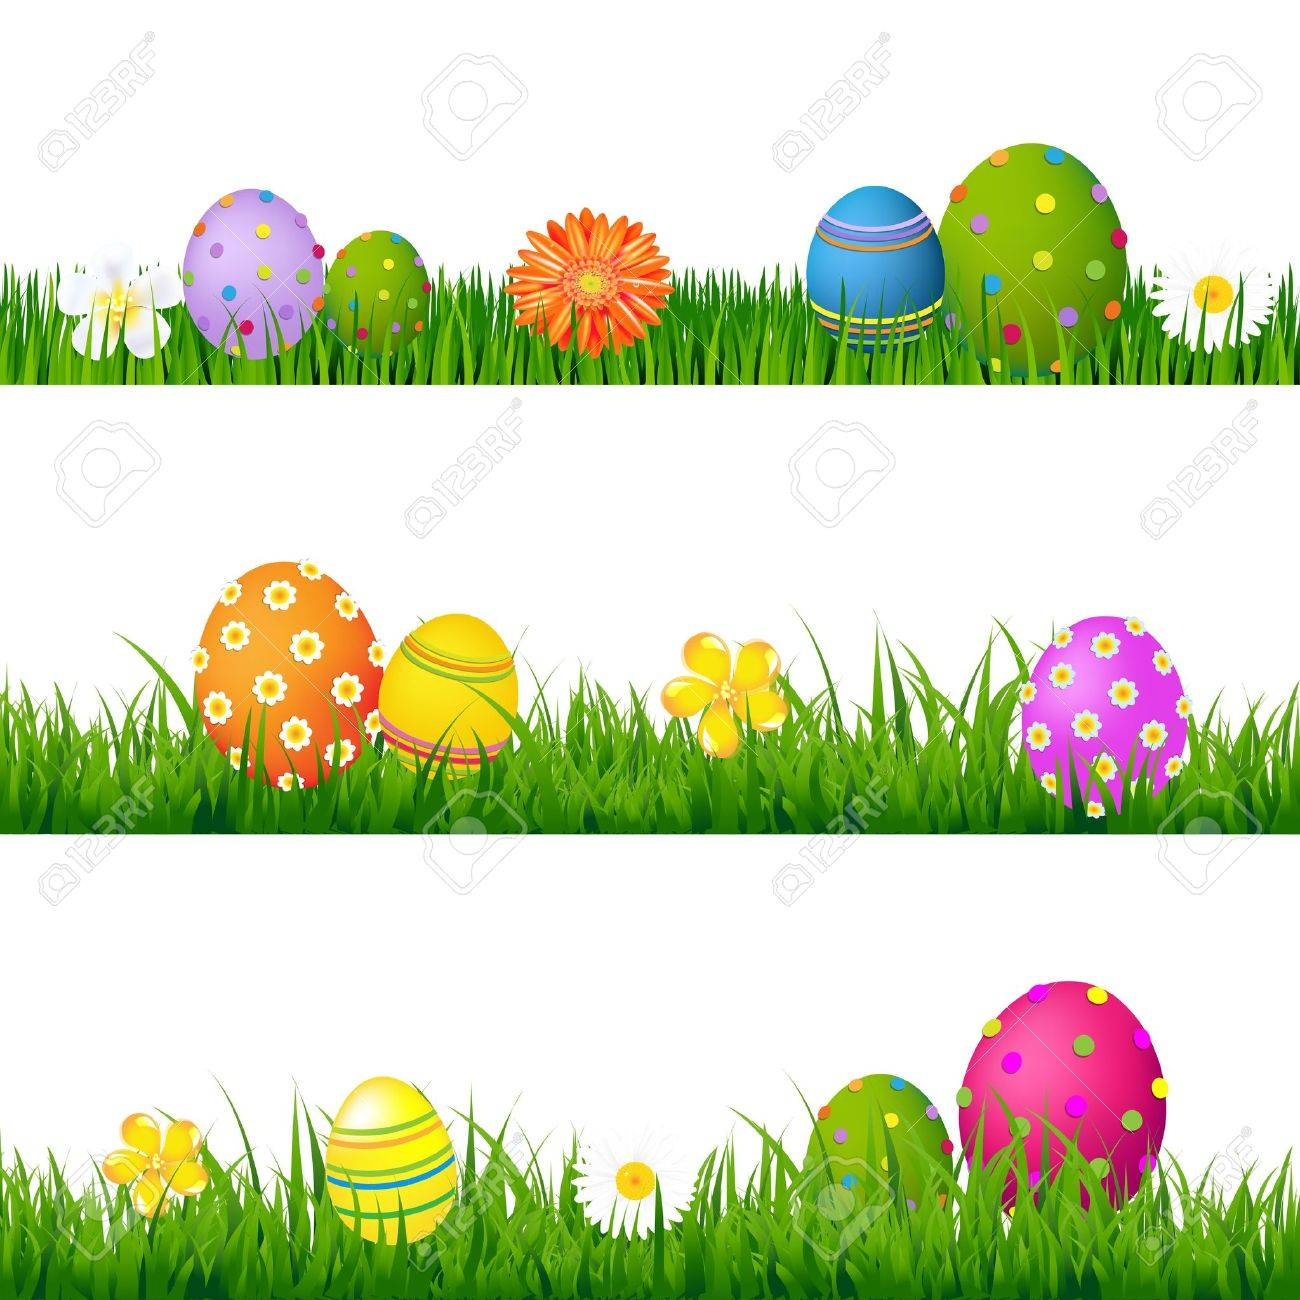 Big Green Grass Set With Flowers And Easter Eggs Gradient Mesh Isolated On White